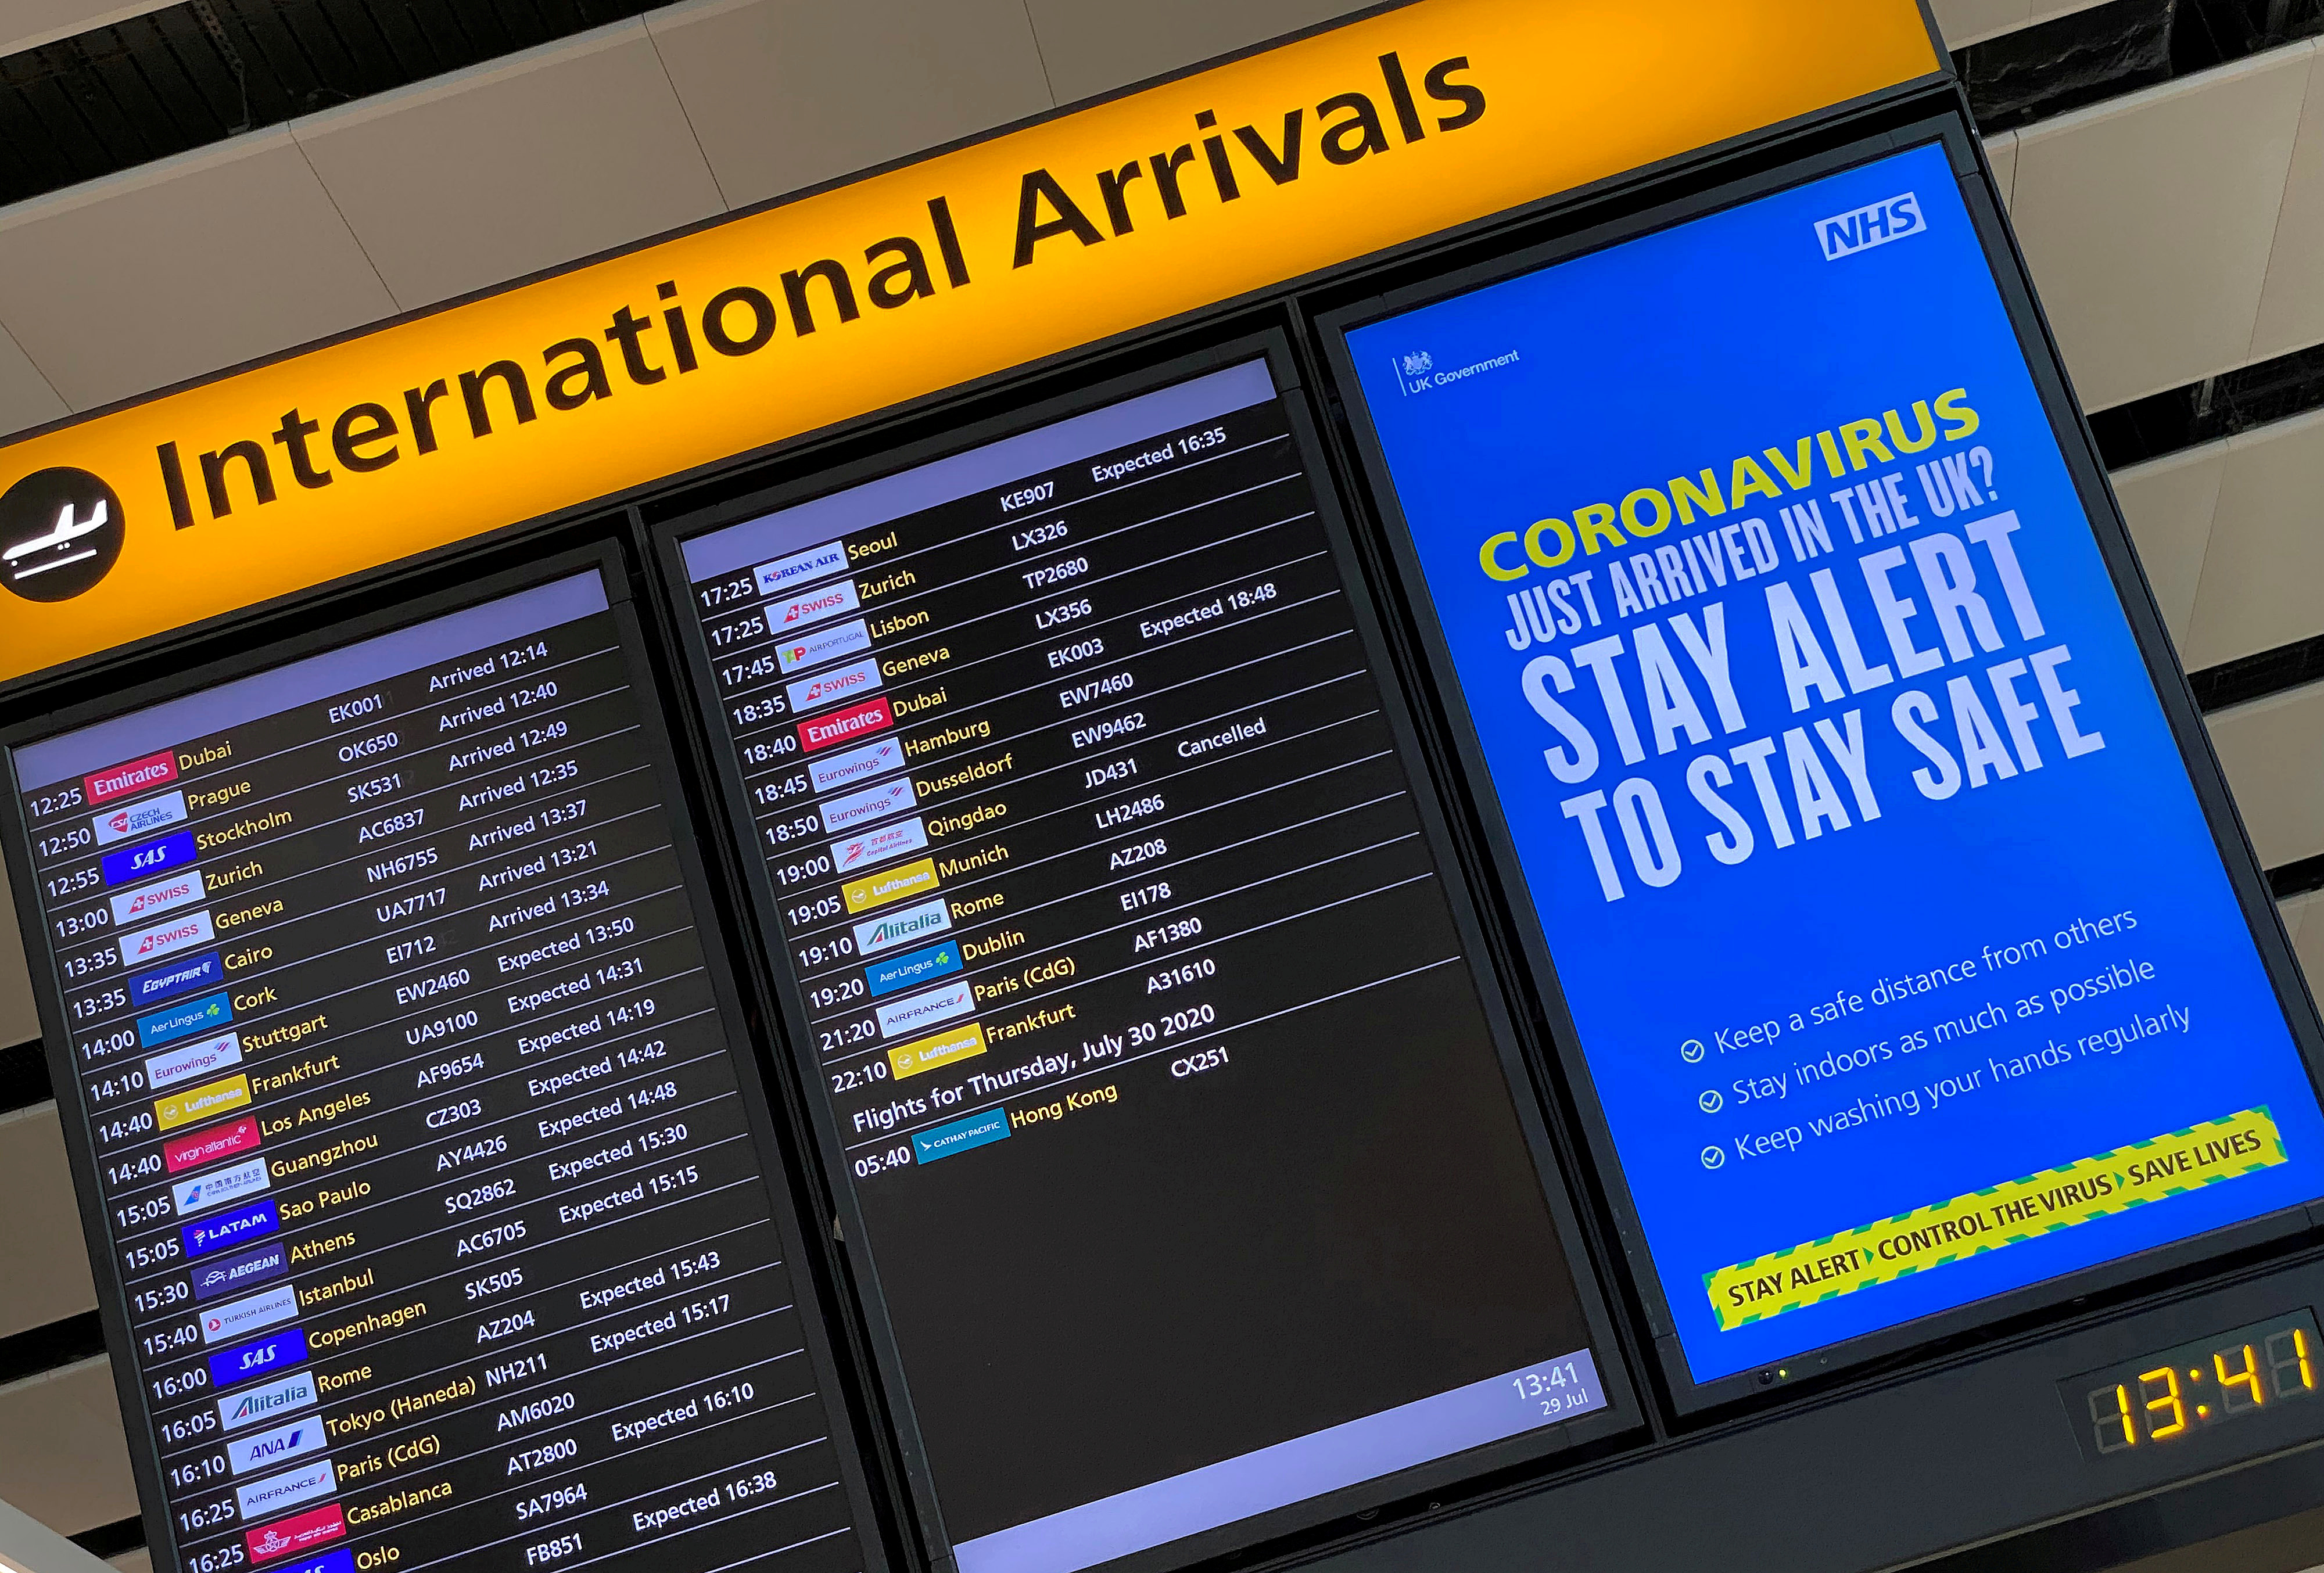 A public health campaign message is displayed on an arrivals information board at Heathrow Airport, following the outbreak of the coronavirus disease (COVID-19), London, Britain, July 29, 2020. REUTERS/Toby Melville//File Photo